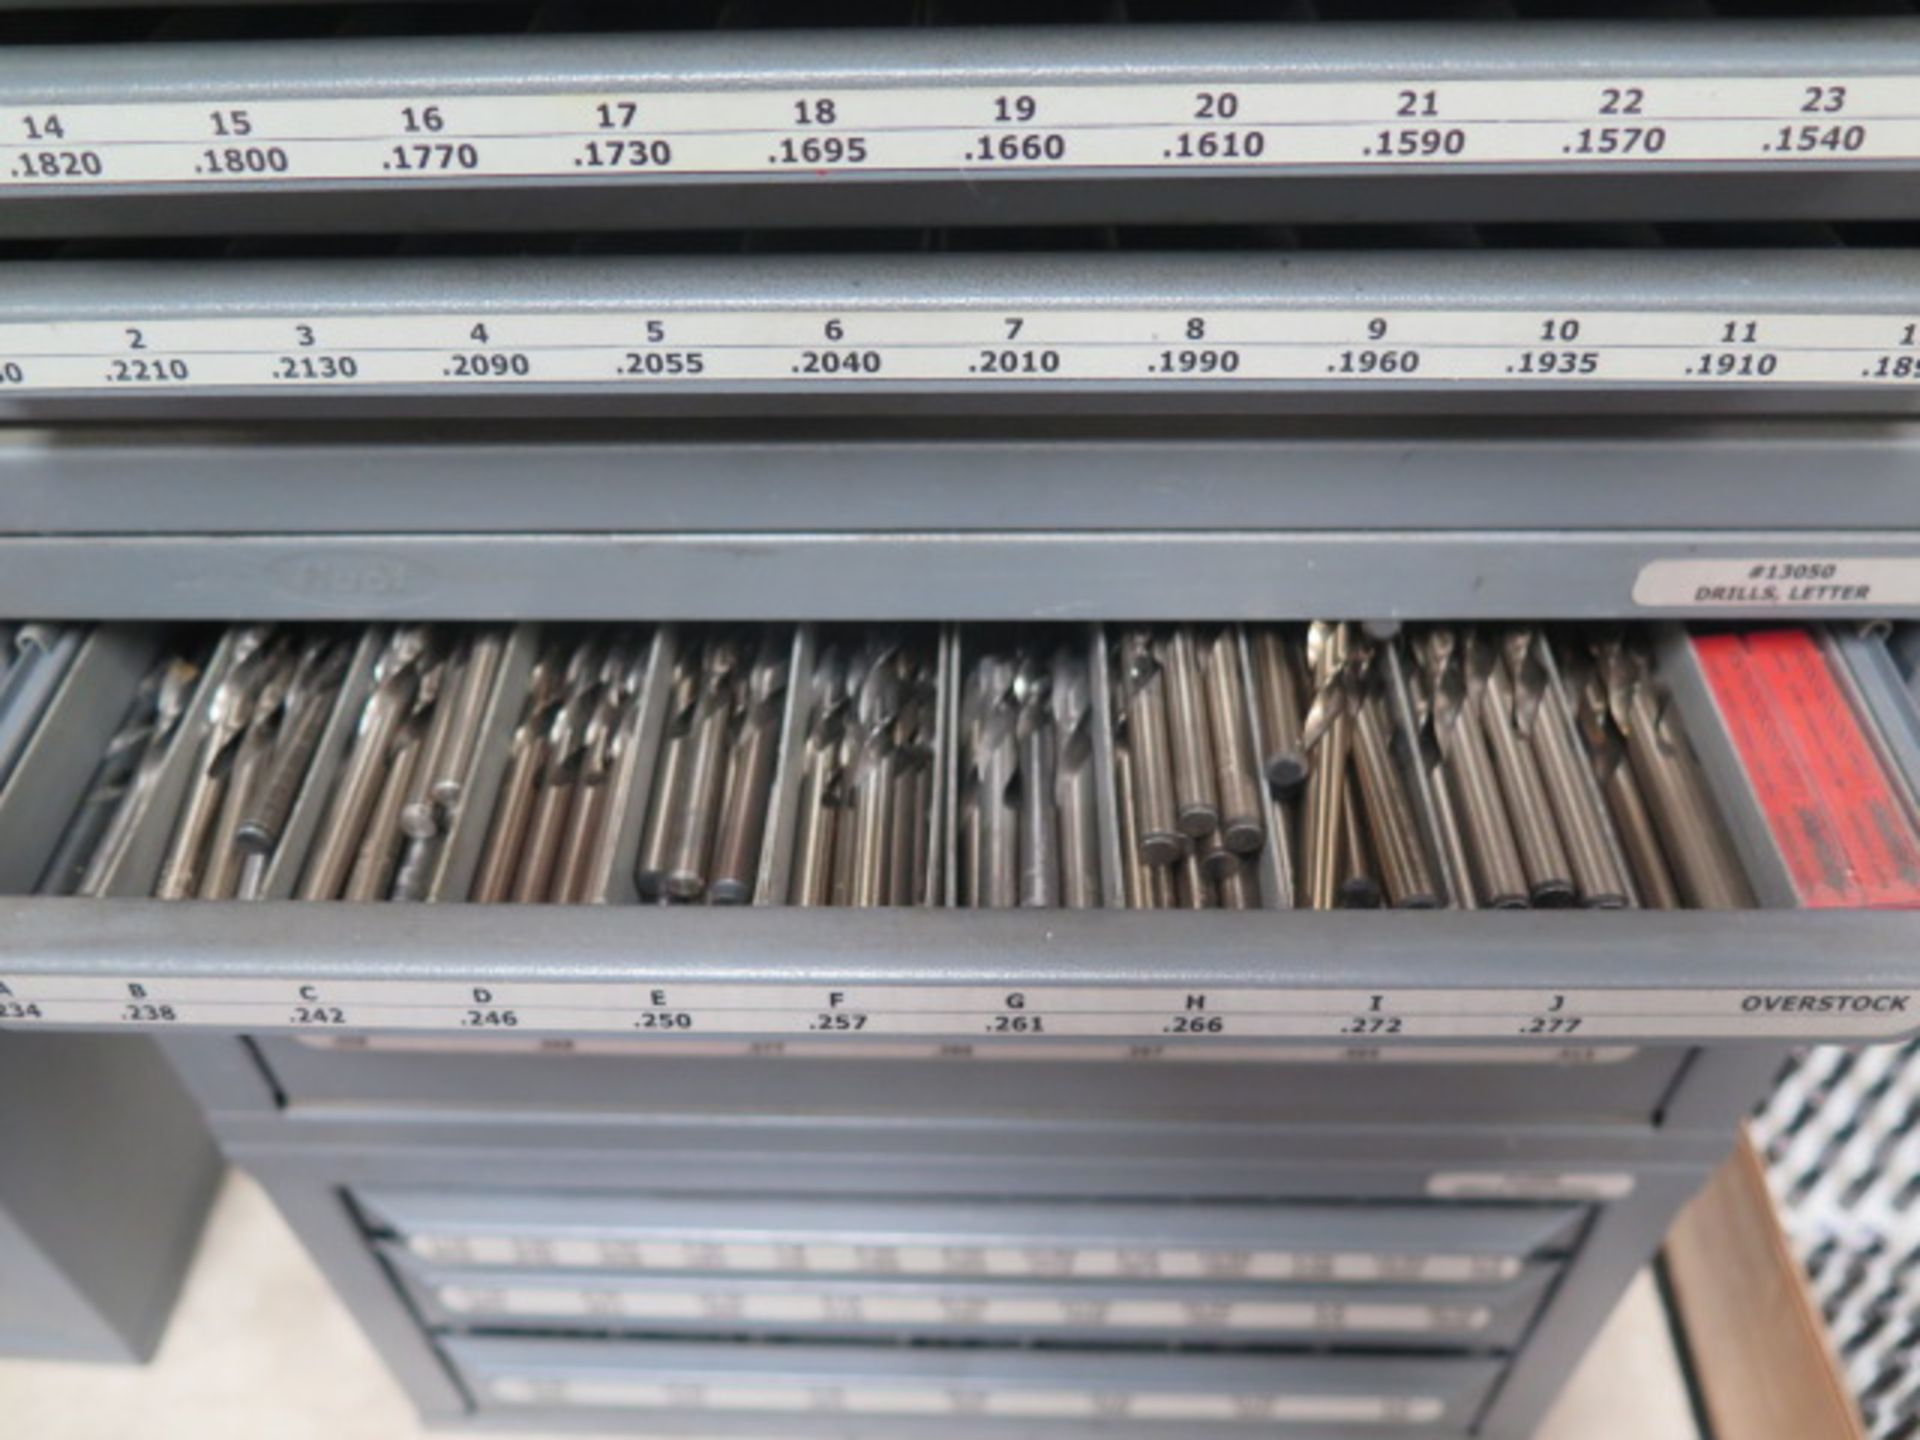 Huot Drill Cabinets (3) w/ Drills (SOLD AS-IS - NO WARRANTY) - Image 10 of 15